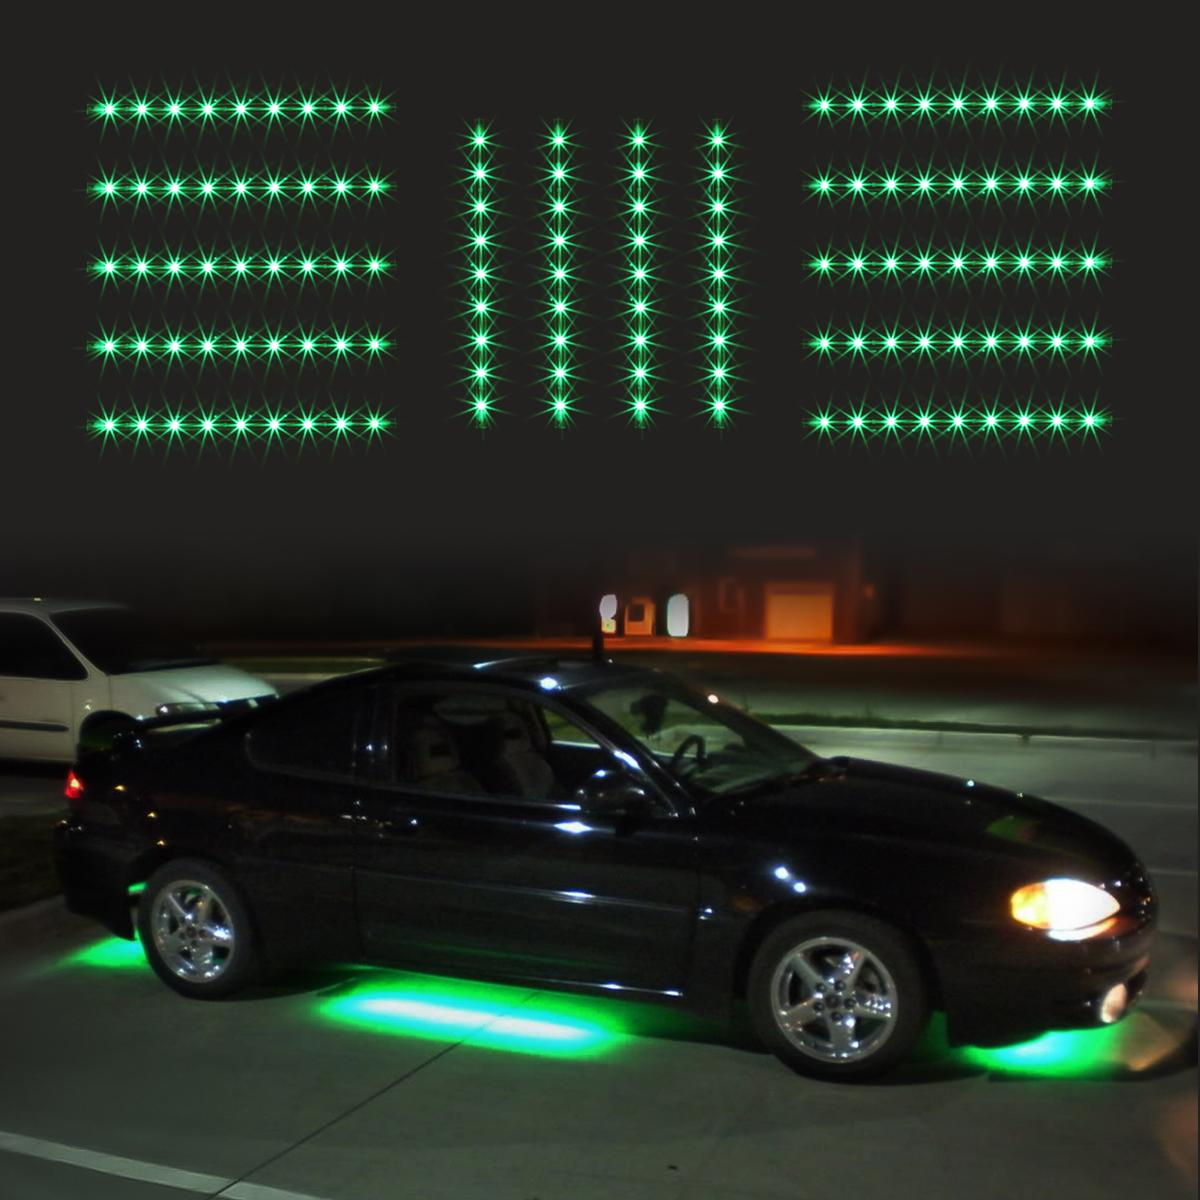 14pc Green Car Truck Underglow Under Body Neon Accent Glow Led Lights 12 Strip